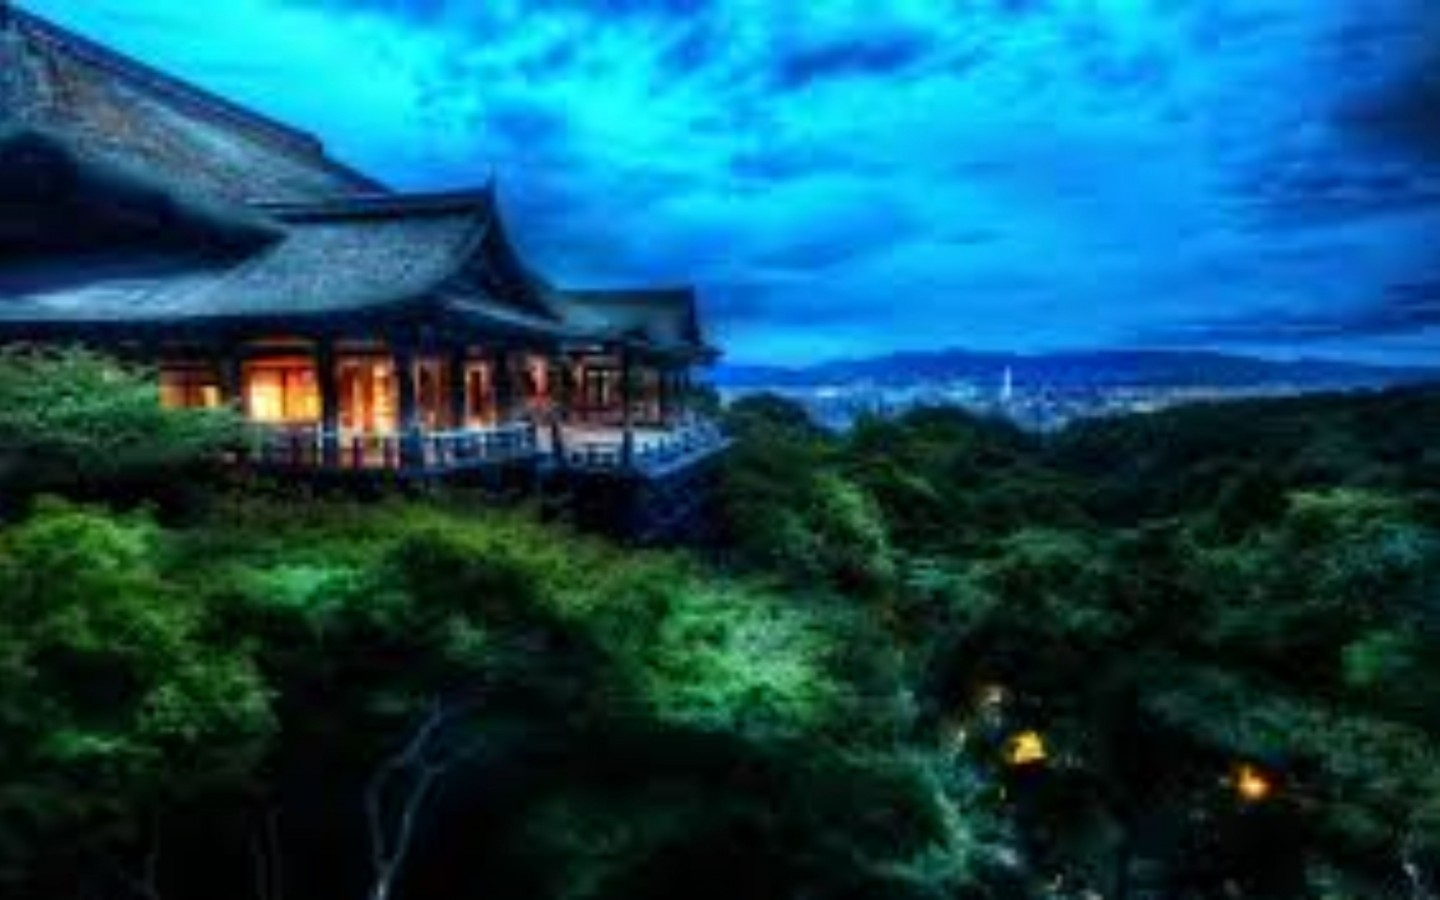 download Trending 2016 Kyoto Japan 4K Wallpaper 4K Wallpaper 1440x900